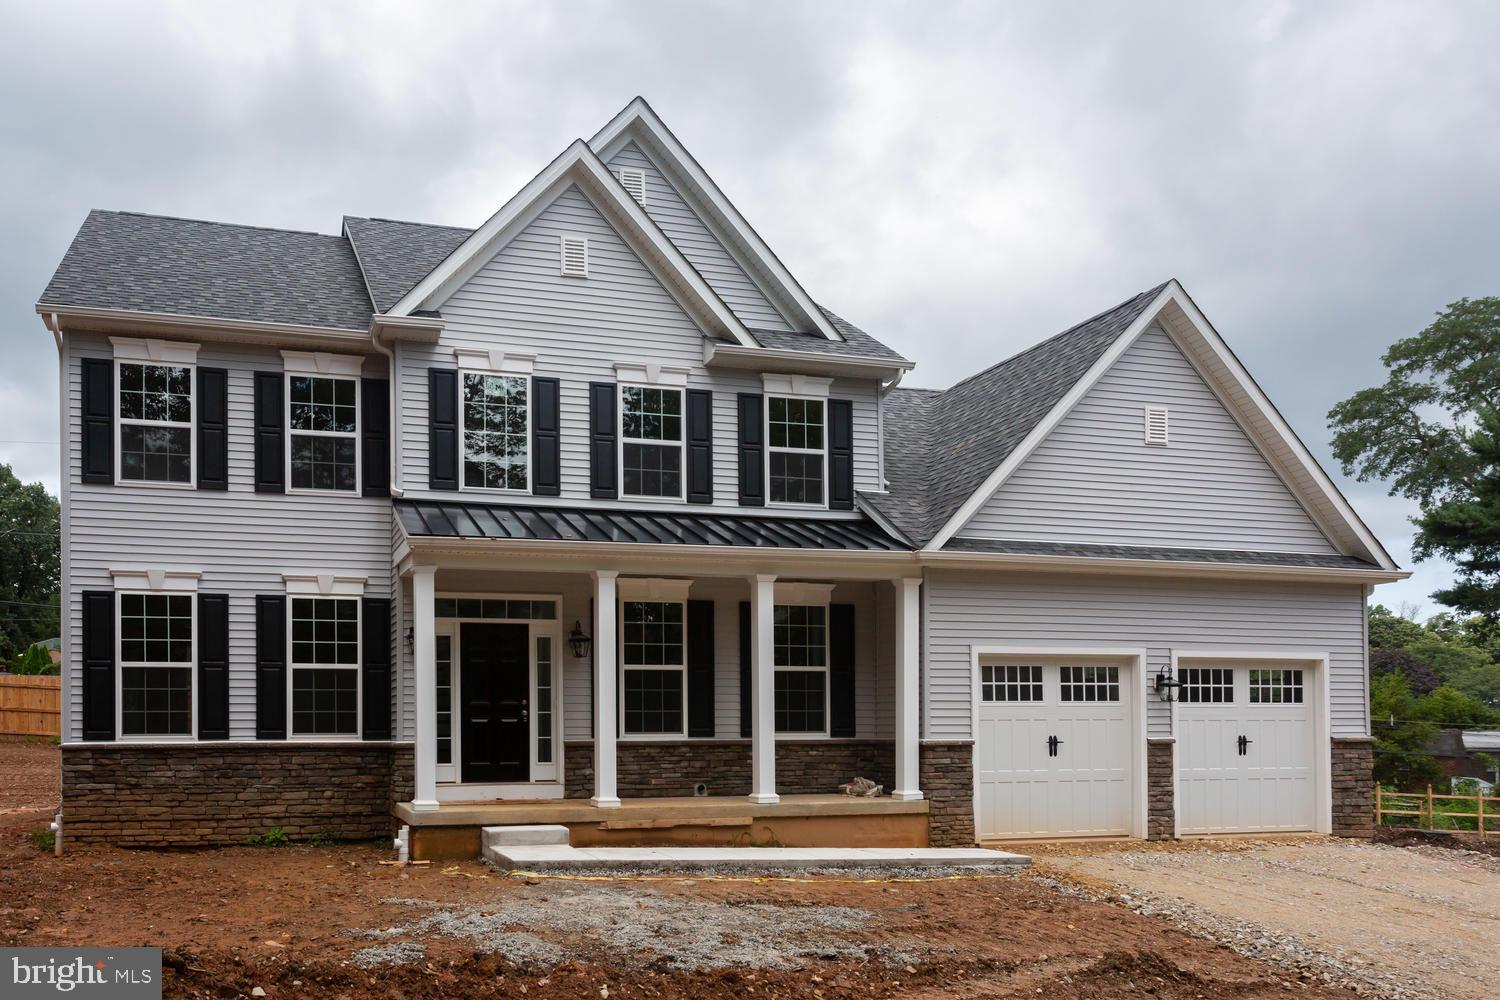 Wonderful opportunity to buy new construction in Malvern Borough. This home is within walking distance to all that Malvern has to offer including shops, dining, parks and the train. This home has not yet been started so this is a great time to fully customize your home or make any changes. Enter from the covered front porch into the two-story foyer with wood floors. To the left are French doors to a private office and to the right of the foyer is the formal living room and dining room. From the dining room enter into the gourmet kitchen with plenty of cabinet space, a walk-in pantry and a large island for gathering, prepping dinner or just a place to relax and have your morning coffee. The kitchen opens to a breakfast room with sliders to the back yard as well as a family room with a propane fireplace with mantel and plenty of windows. Also off the kitchen is access to the mud room/laundry room with space for either cubbies or an additional closet as well as the two car garage.  There is also a powder room and large coat closet on this floor. The second floor offers four generous sized bedrooms and two full baths. The main bedroom offers a walk-in closet large enough to split into a sitting room as well if desired. The master bath offers a soaking tub, stall shower, double vanity sink and a linen closet. The hall bath features a double vanity and a tub/shower combo. Additionally, there is a large walk-in closet in the hall that may be able to serve as a laundry room instead.  There is a full walk out lower level just waiting to be finished as well. This is a great opportunity to buy a new home surrounded by other new homes in desirable Malvern Borough.